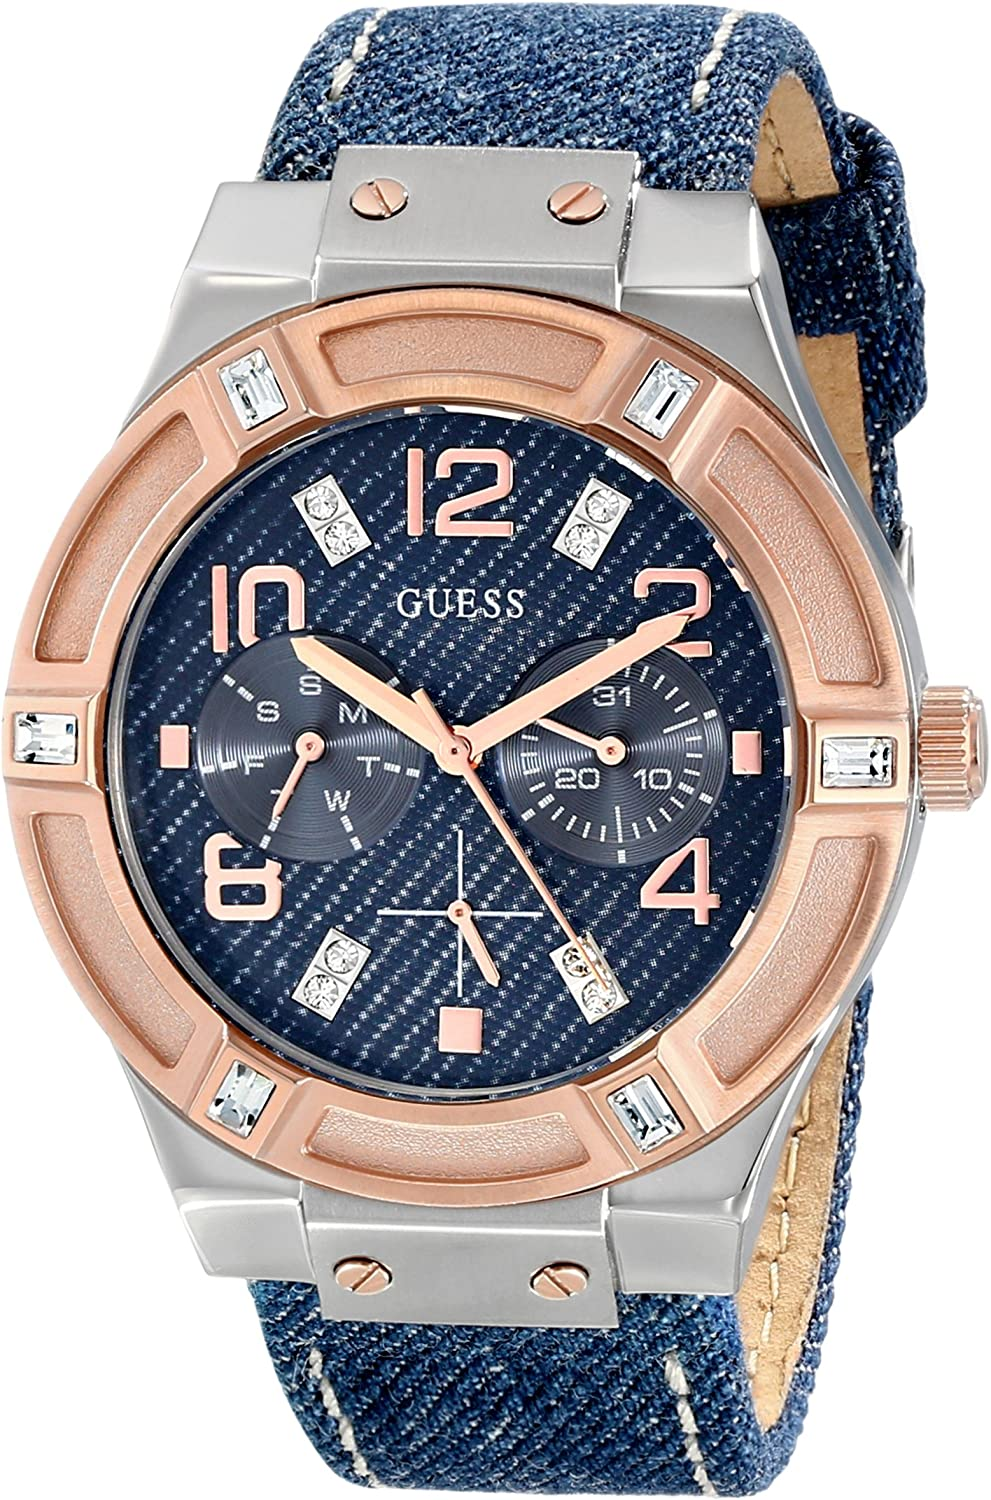 GUESS Women s U0289L1 Silver and Rose Gold-Tone Multi-Function Watch with Denim Strap